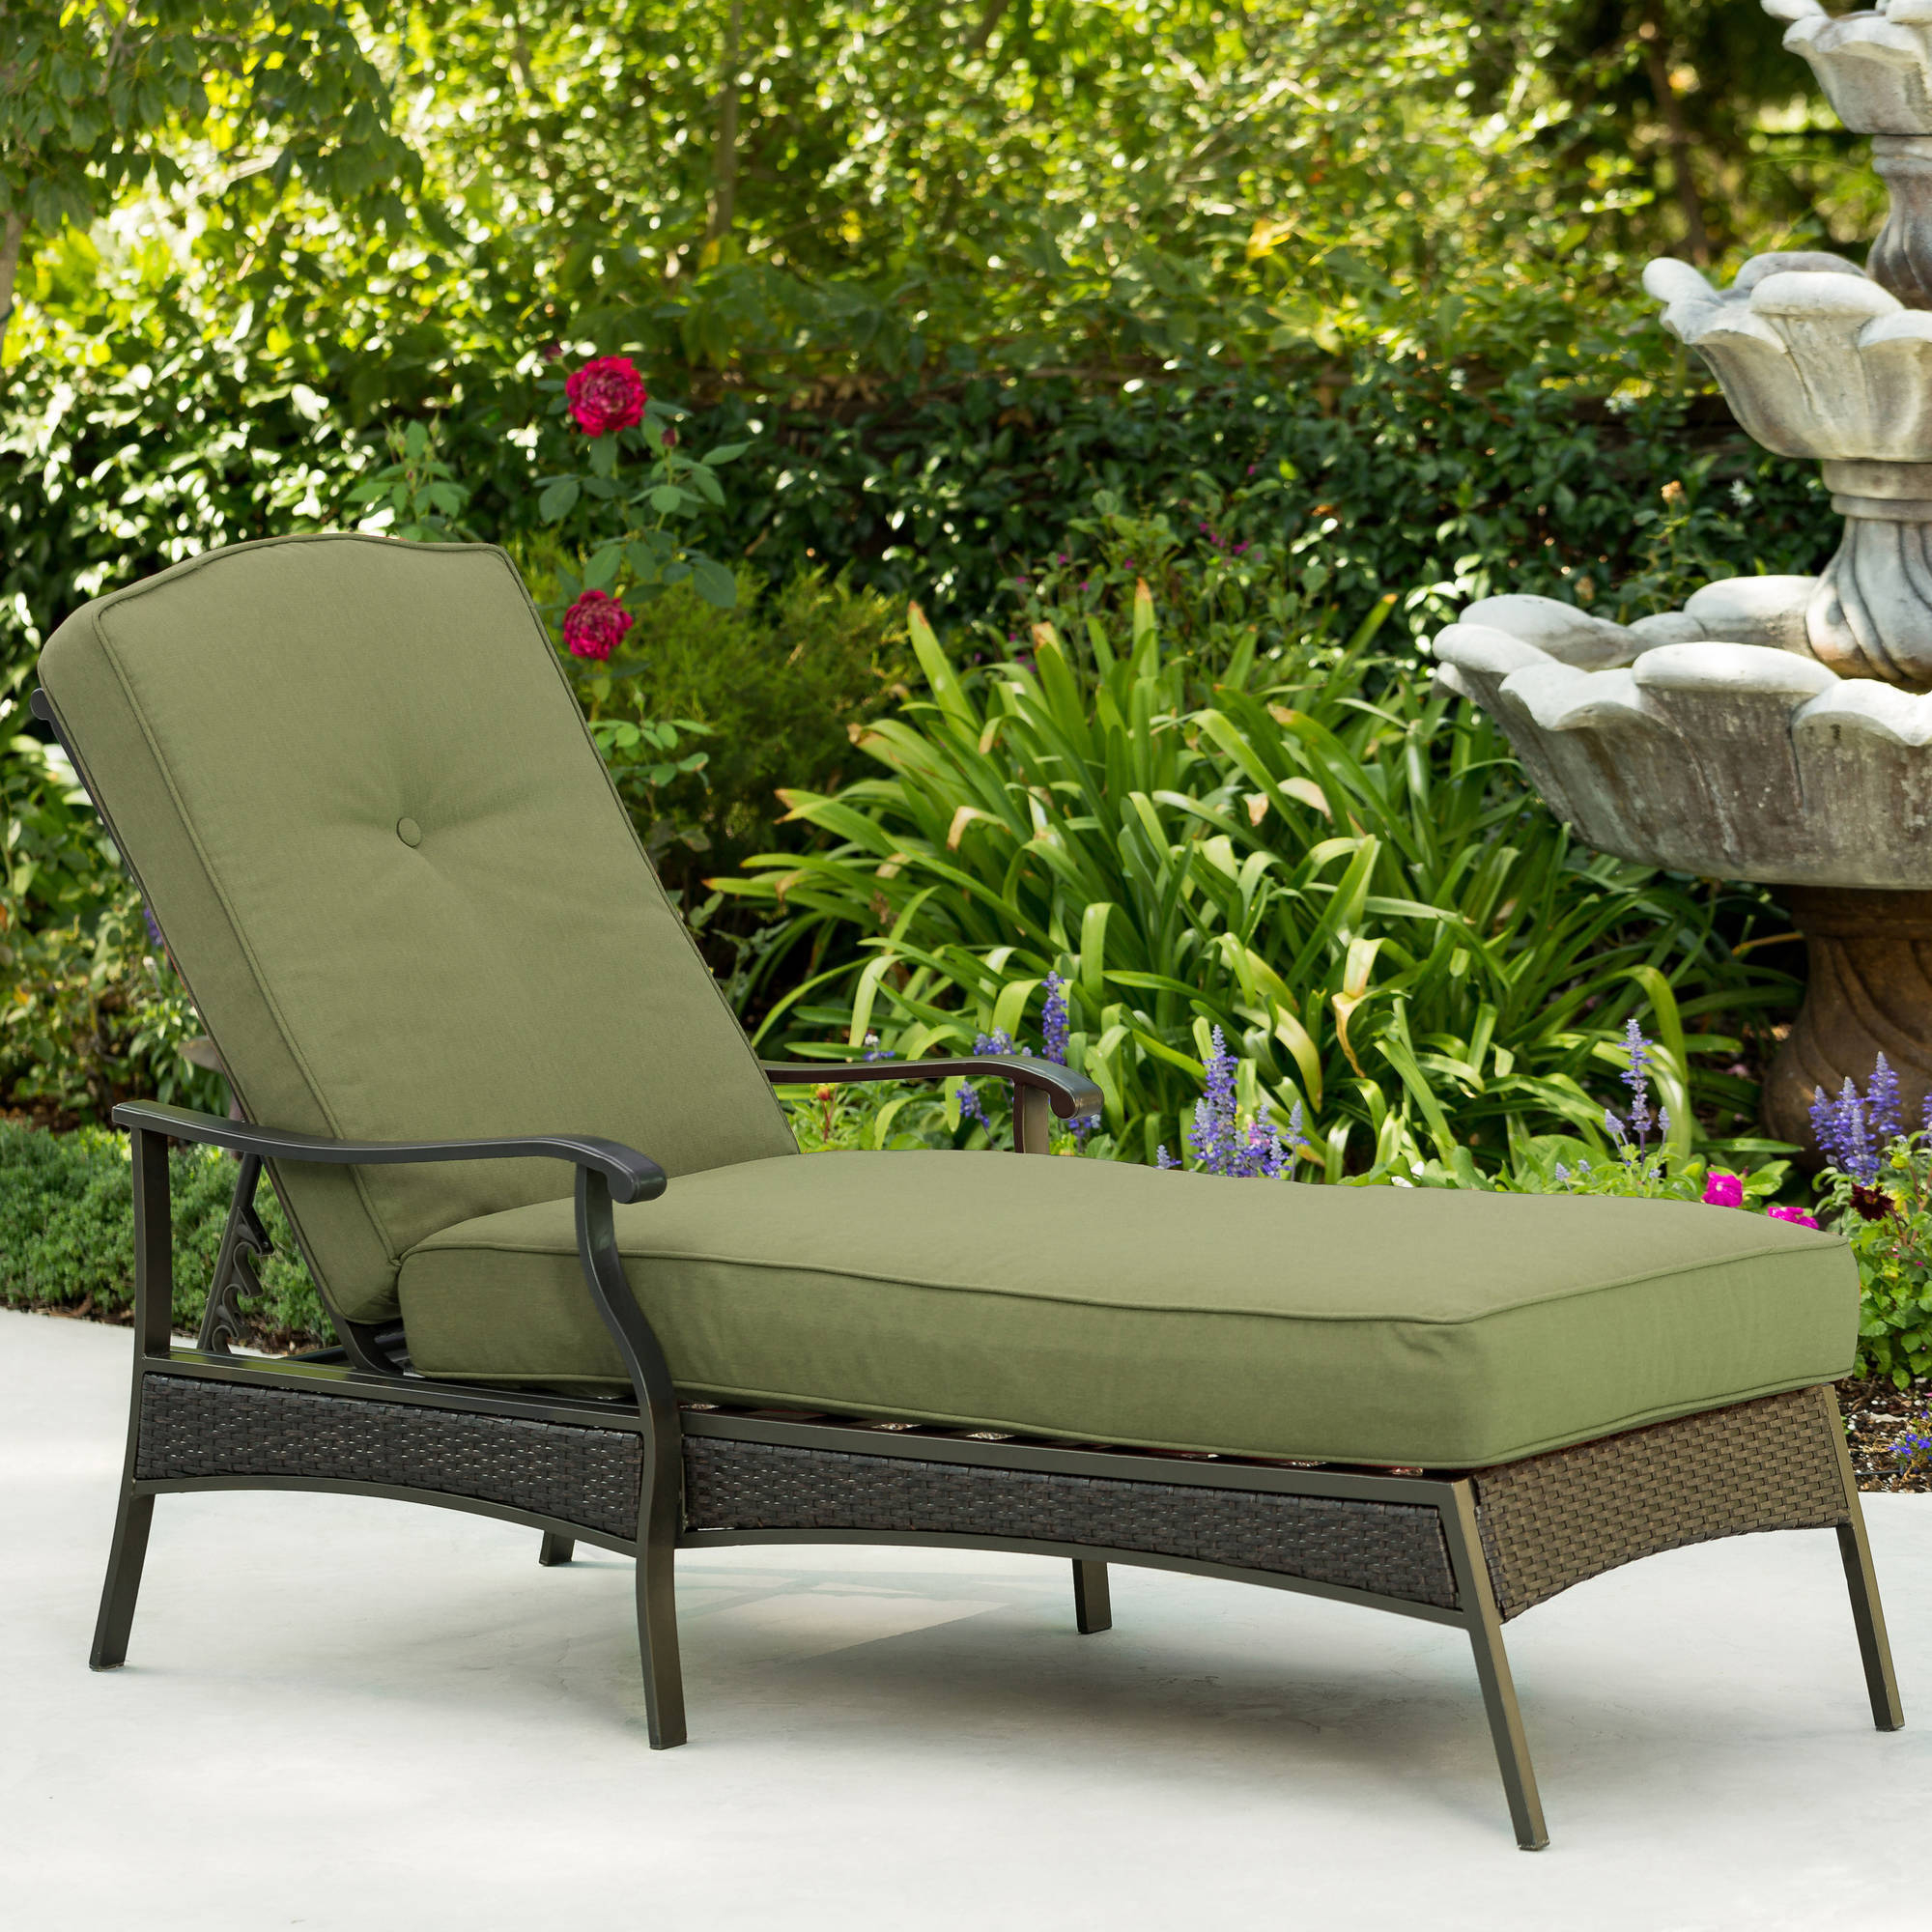 Most Recently Released Better Homes & Gardens Providence Outdoor Chaise Lounge, Green – Walmart Regarding Wood Blue And White Cushion Outdoor Chaise Lounge Chairs (View 14 of 25)